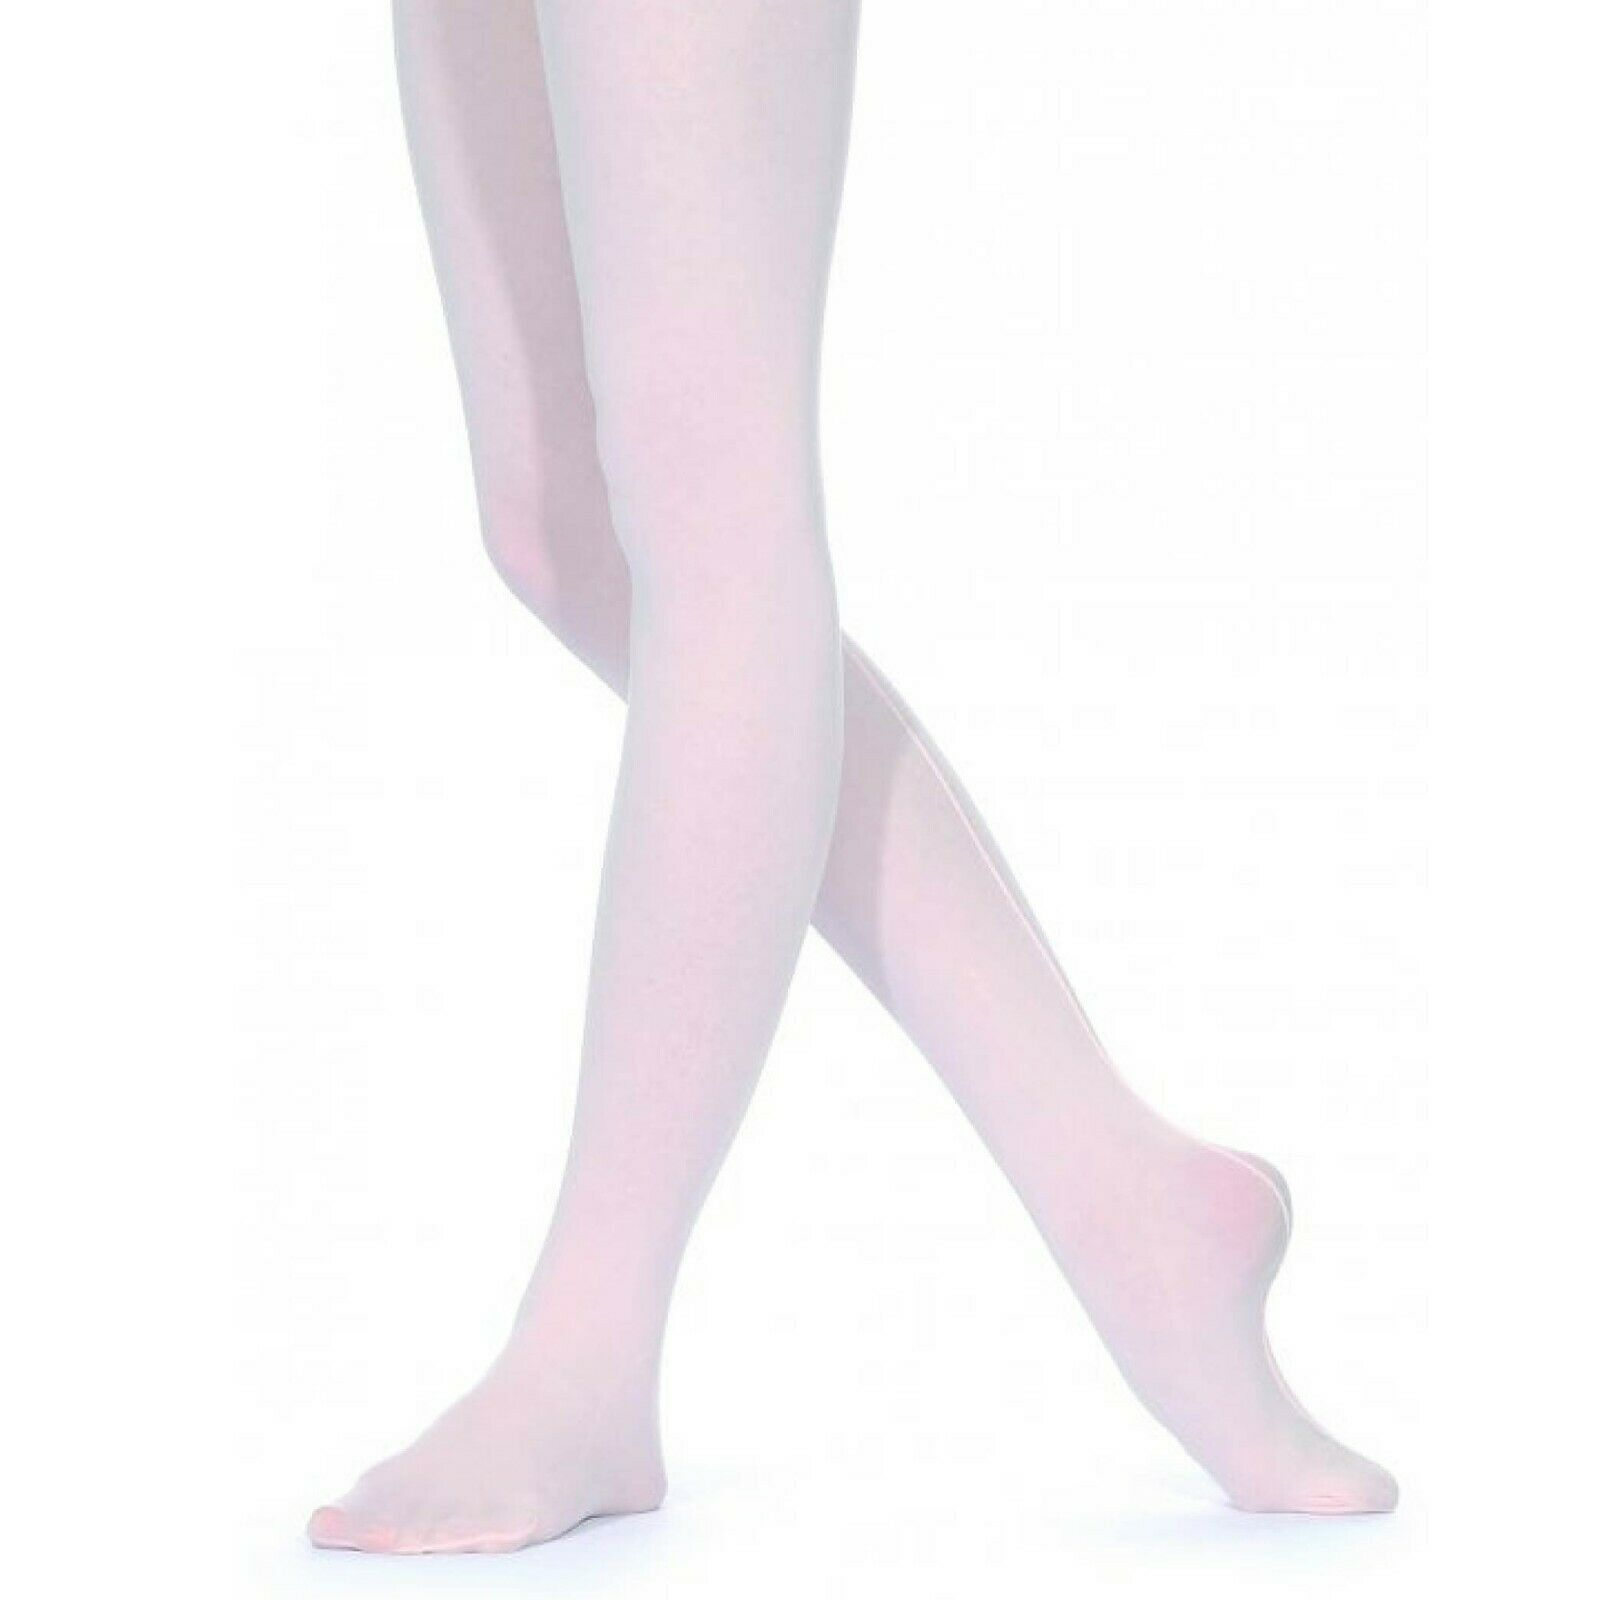 NEW ROCH VALLEY THEATRICAL PINK SILKY SEAMED DANCE TAP BALLET TIGHTS SILKBST